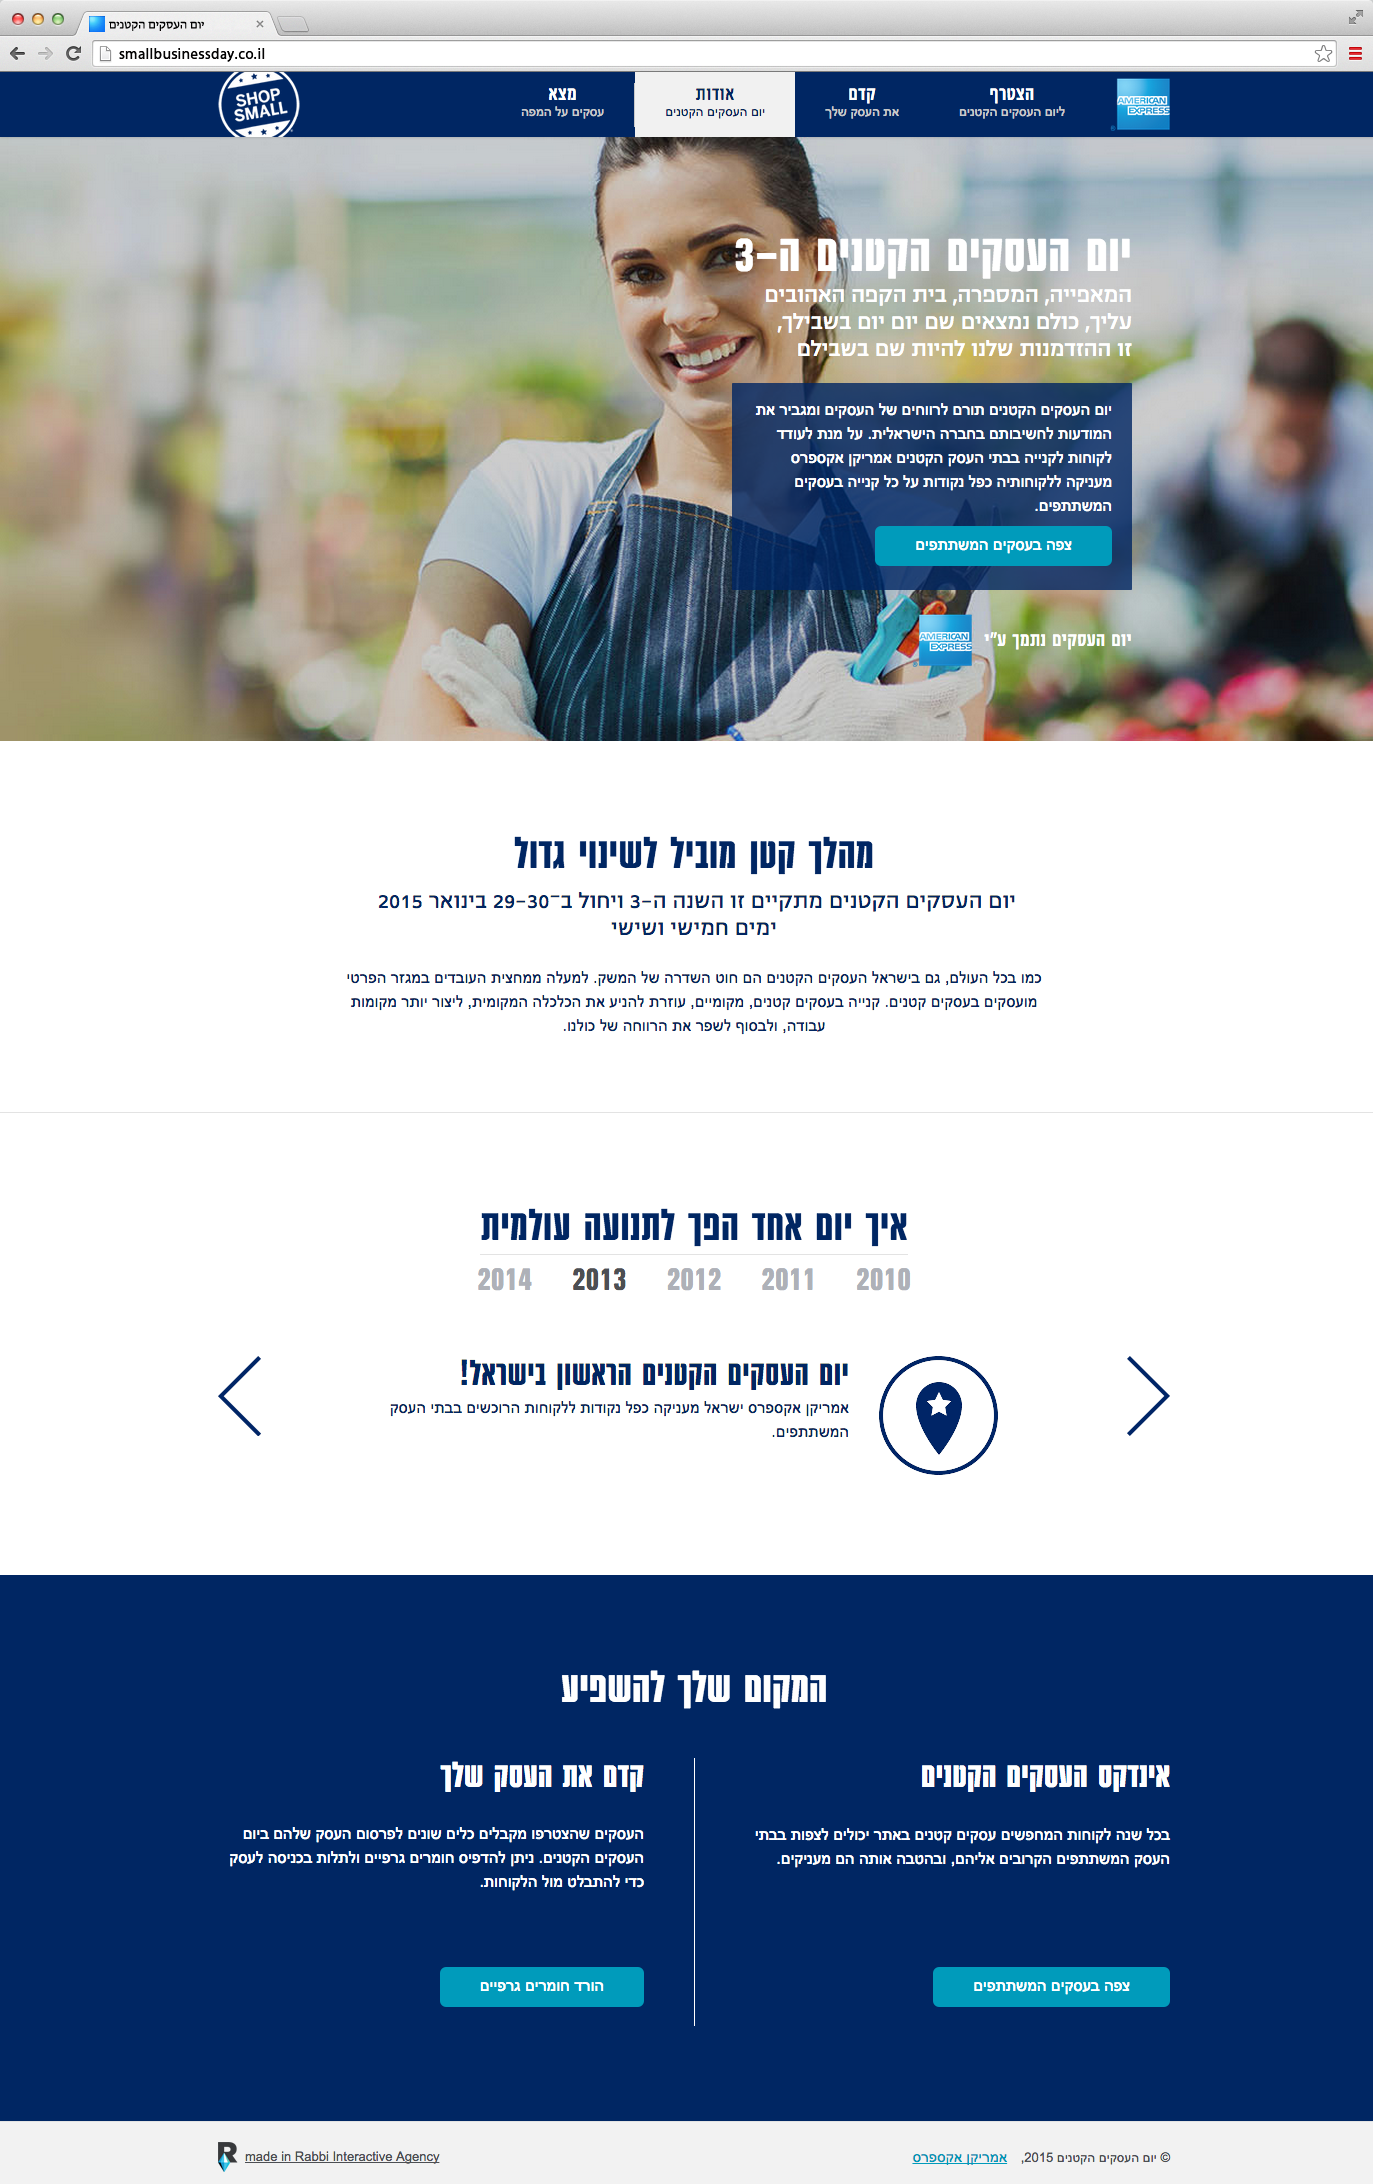 The story of the American Express Small Business Day, desktop version